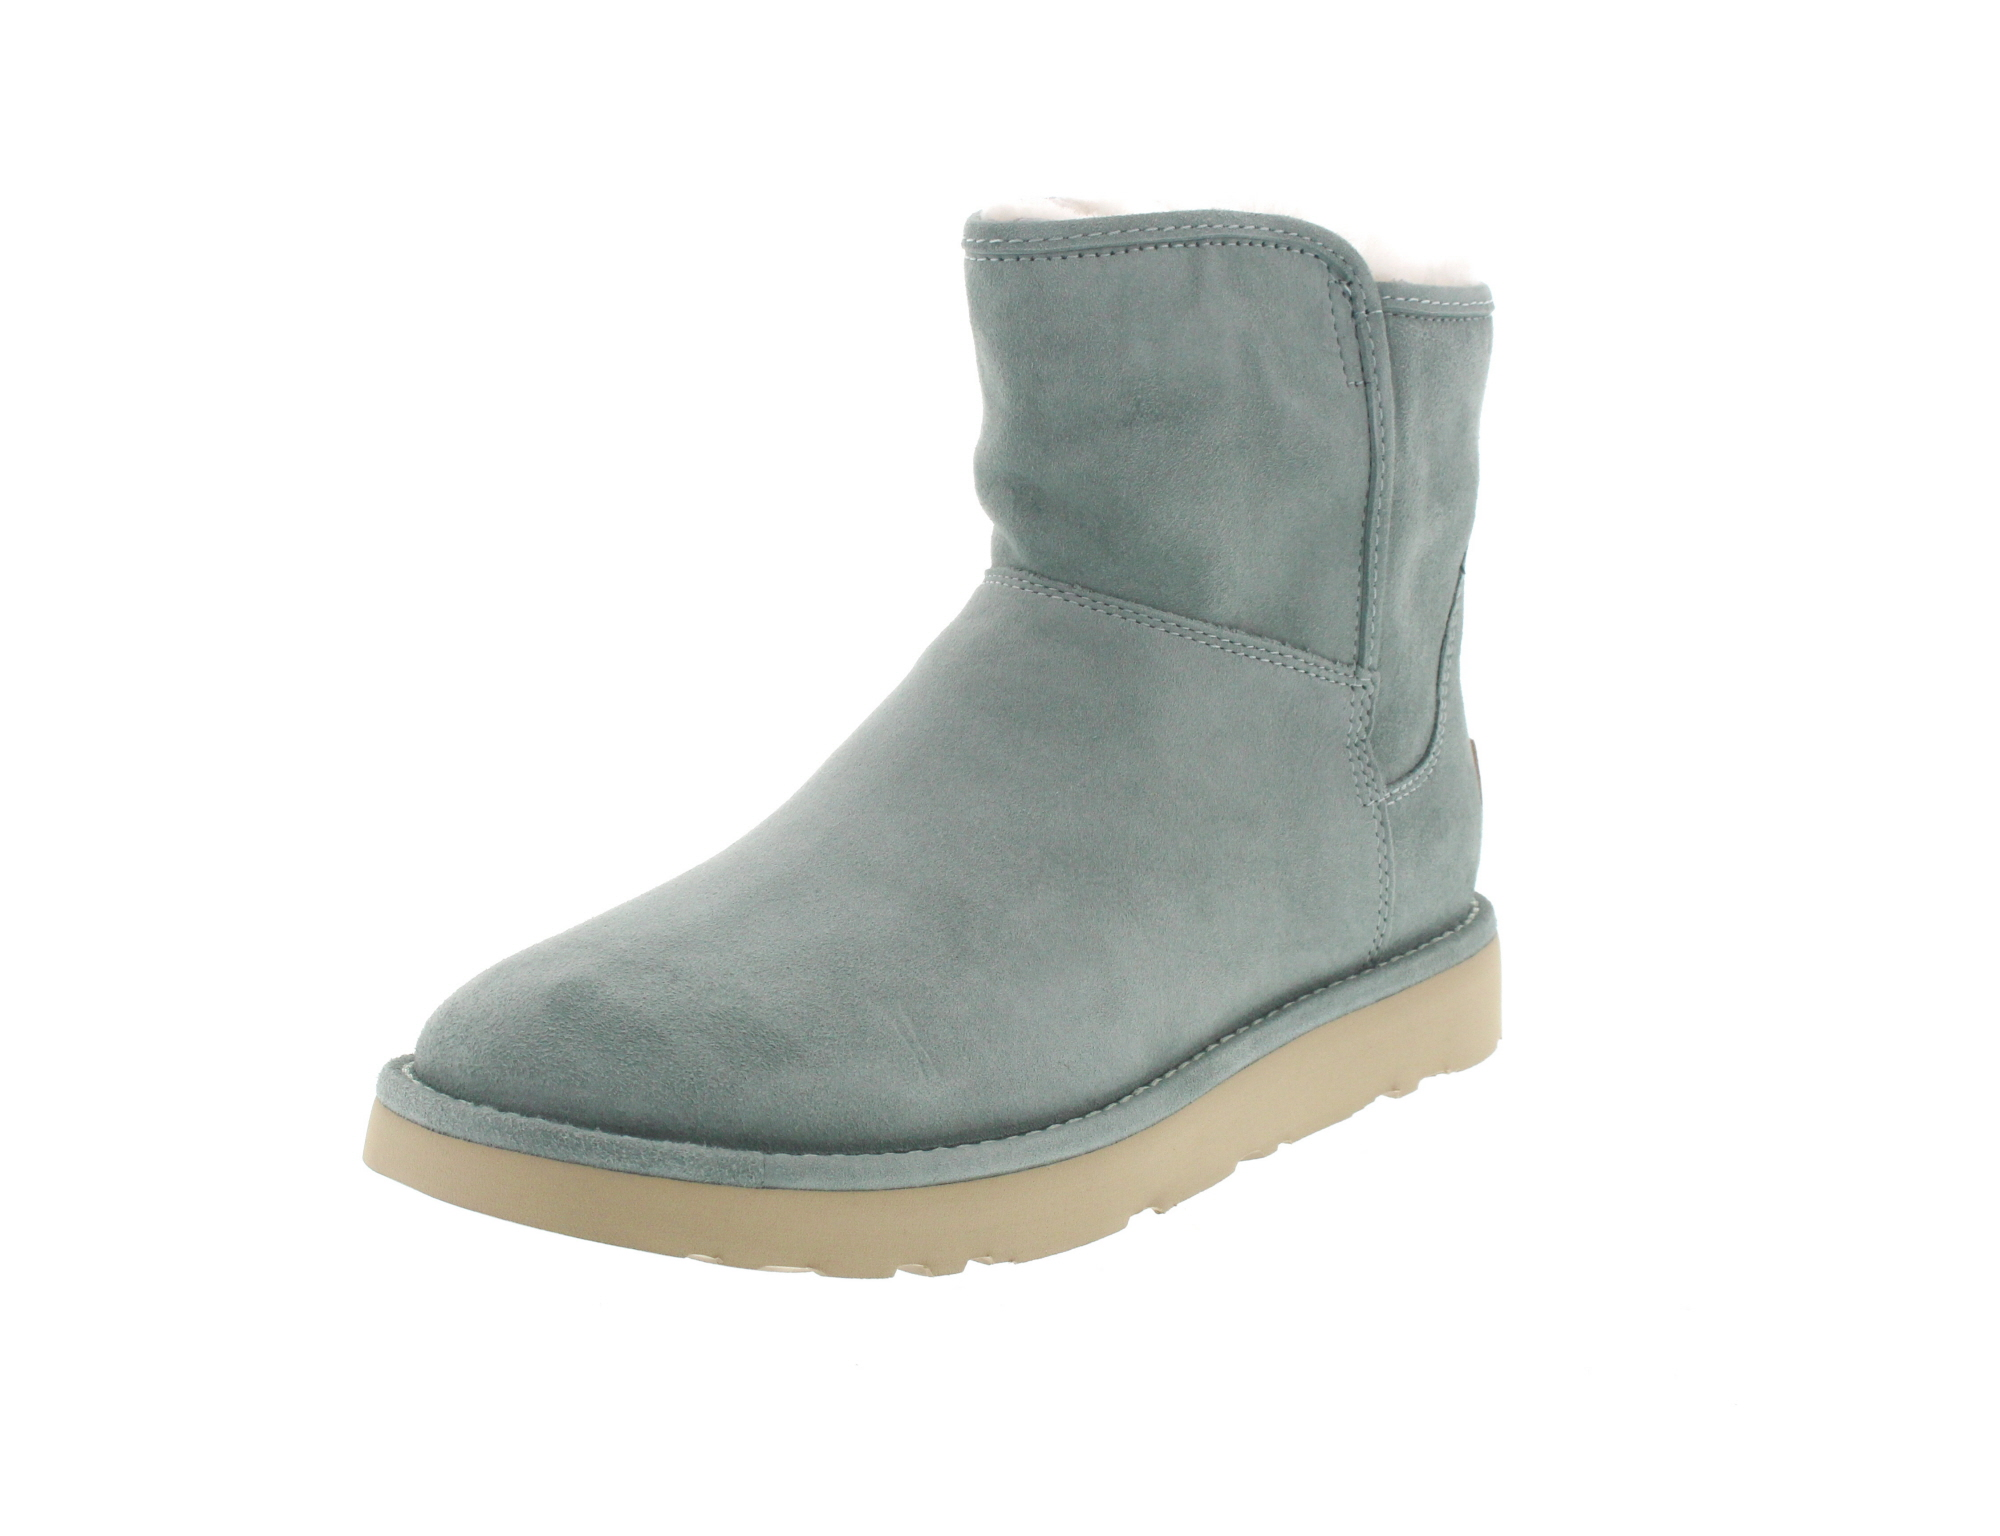 UGG Damen - Stiefelette ABREE MINI 1016548 - sea green -0